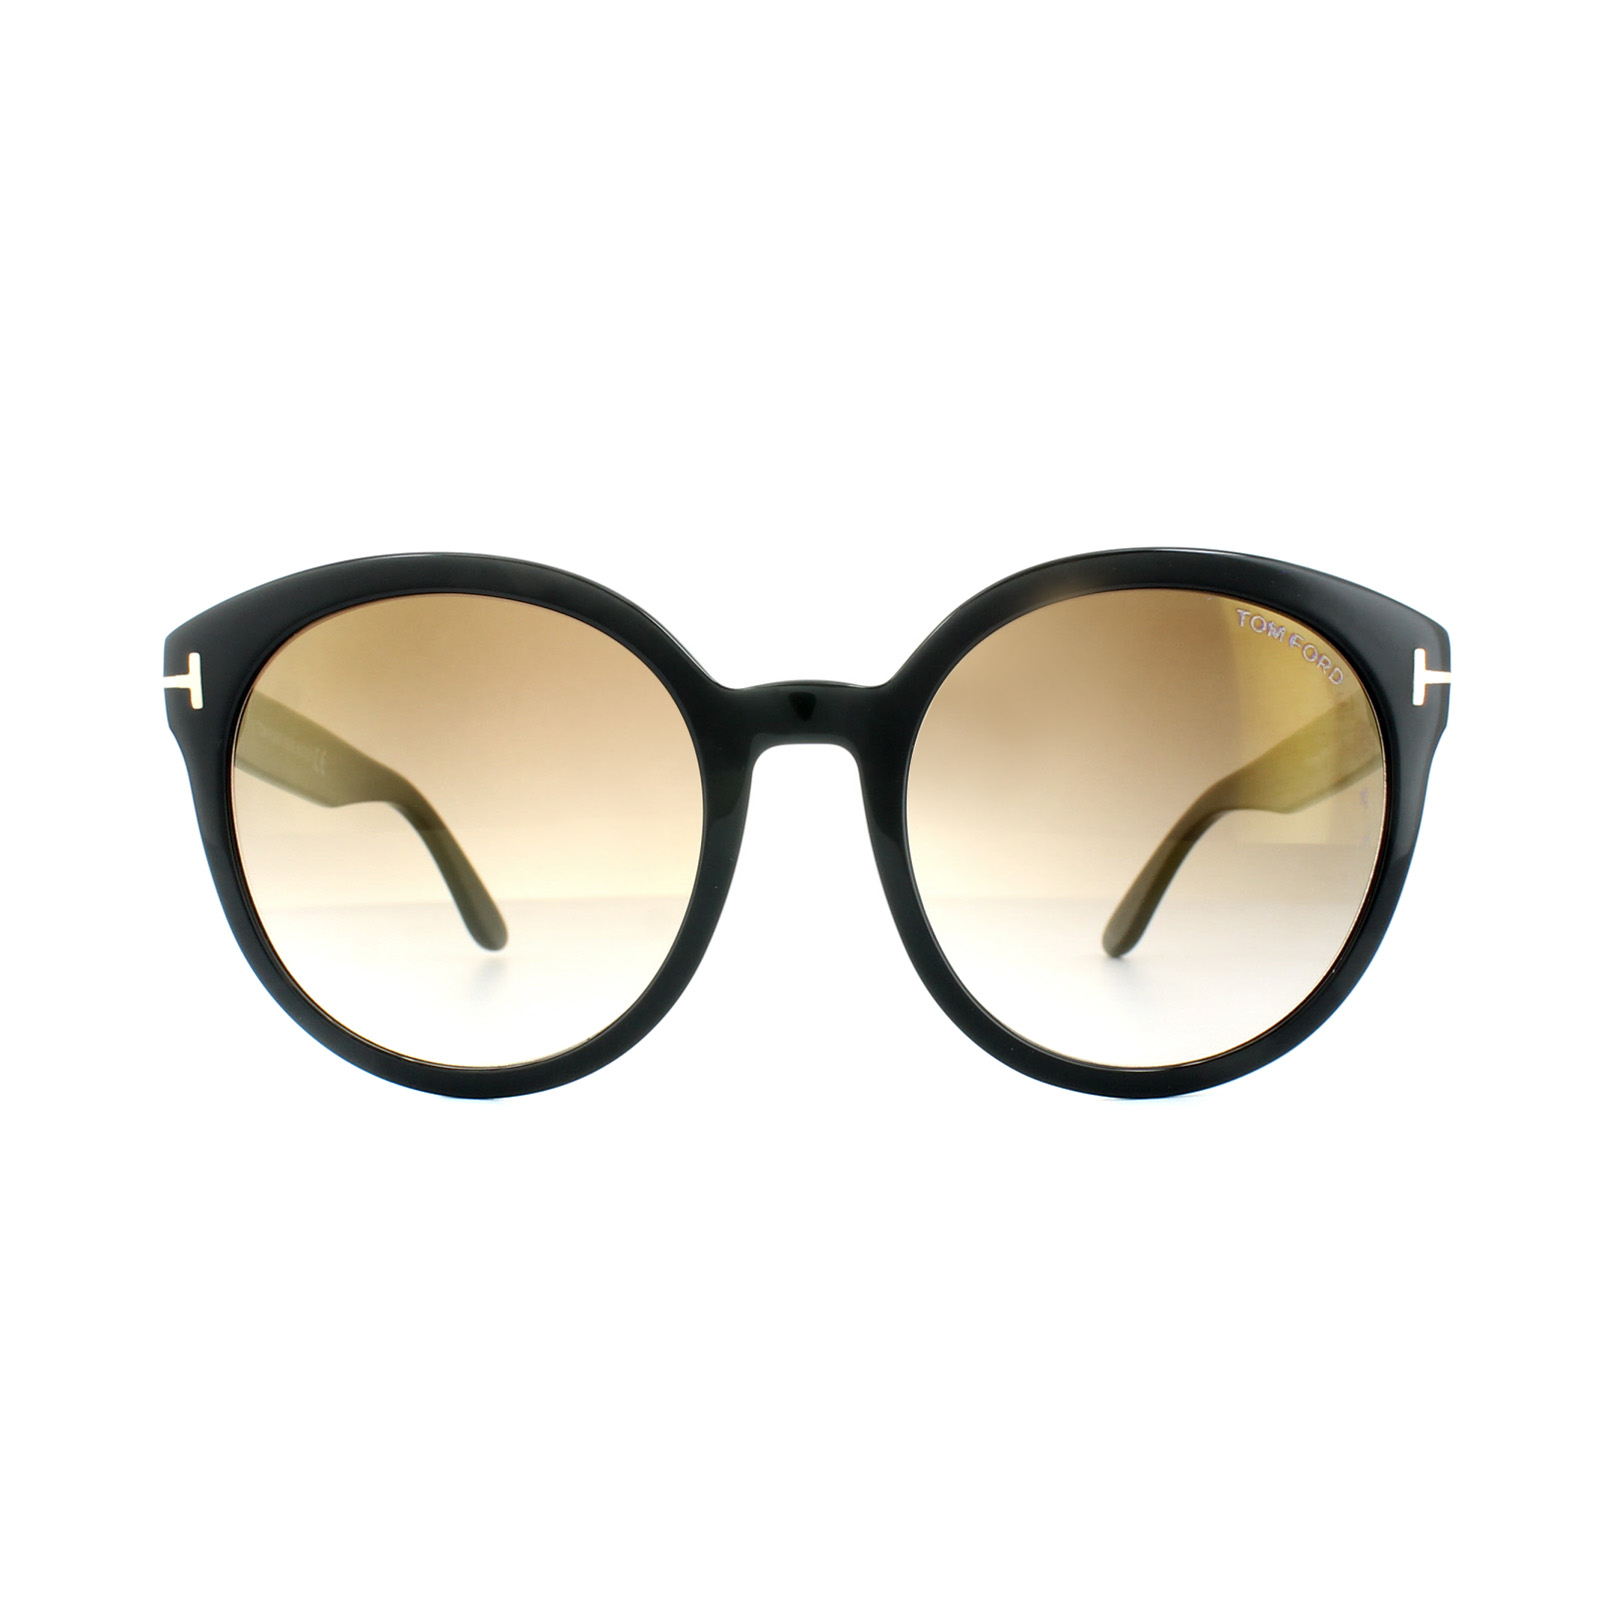 Cheap Tom Ford 0503 Philippa Sunglasses Discounted